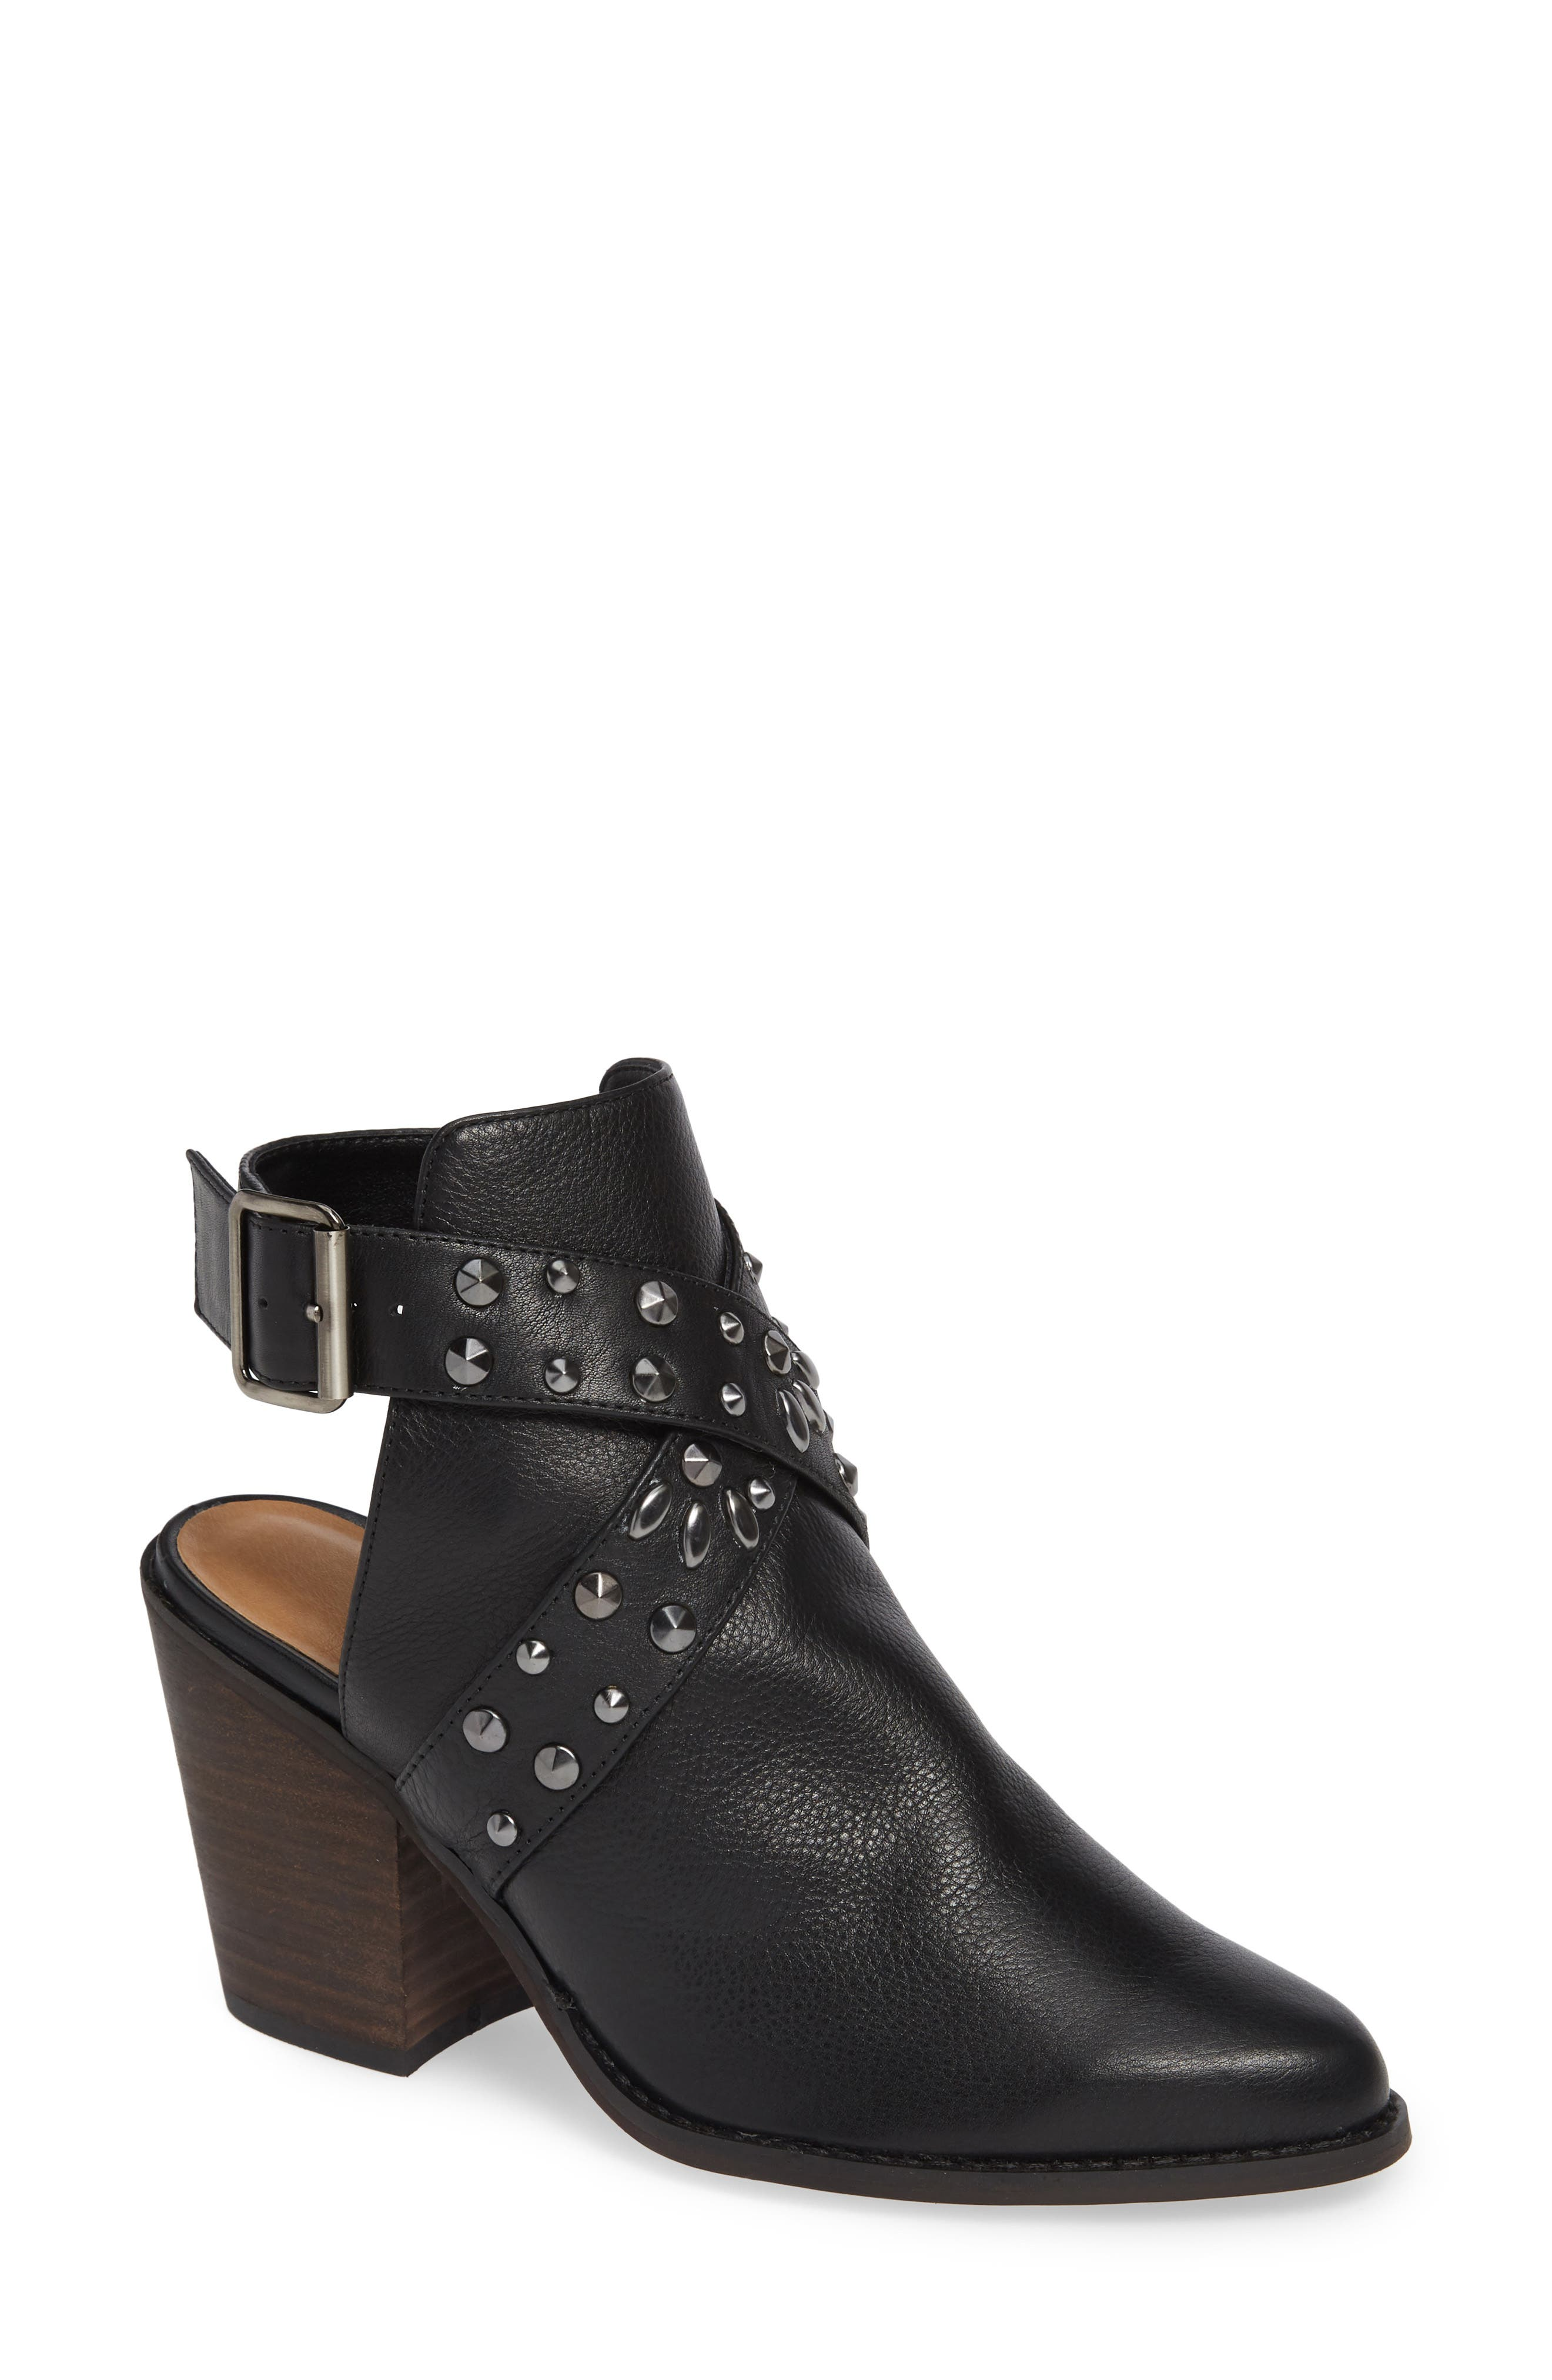 Chinese Laundry Small Town Studded Bootie, Black